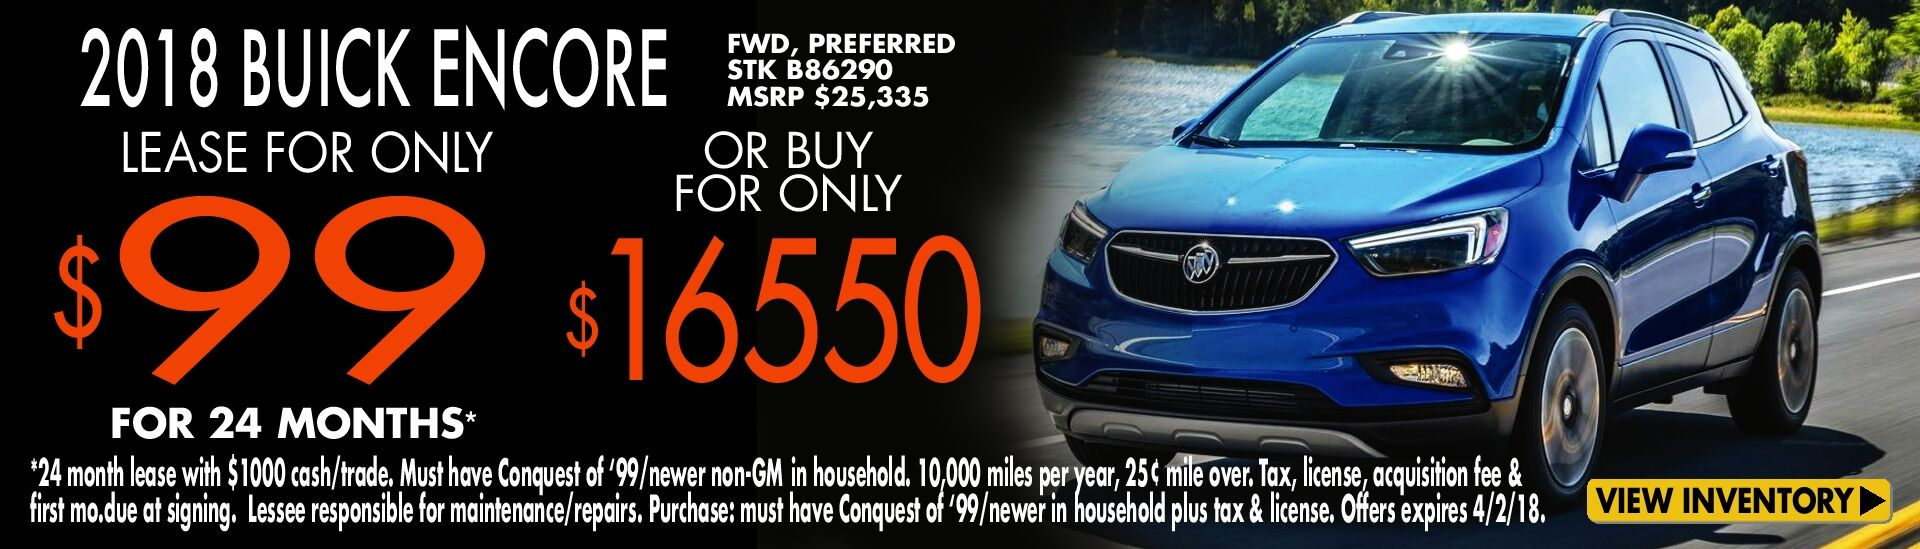 Lease a '18 Buick Encore just $99/mo.